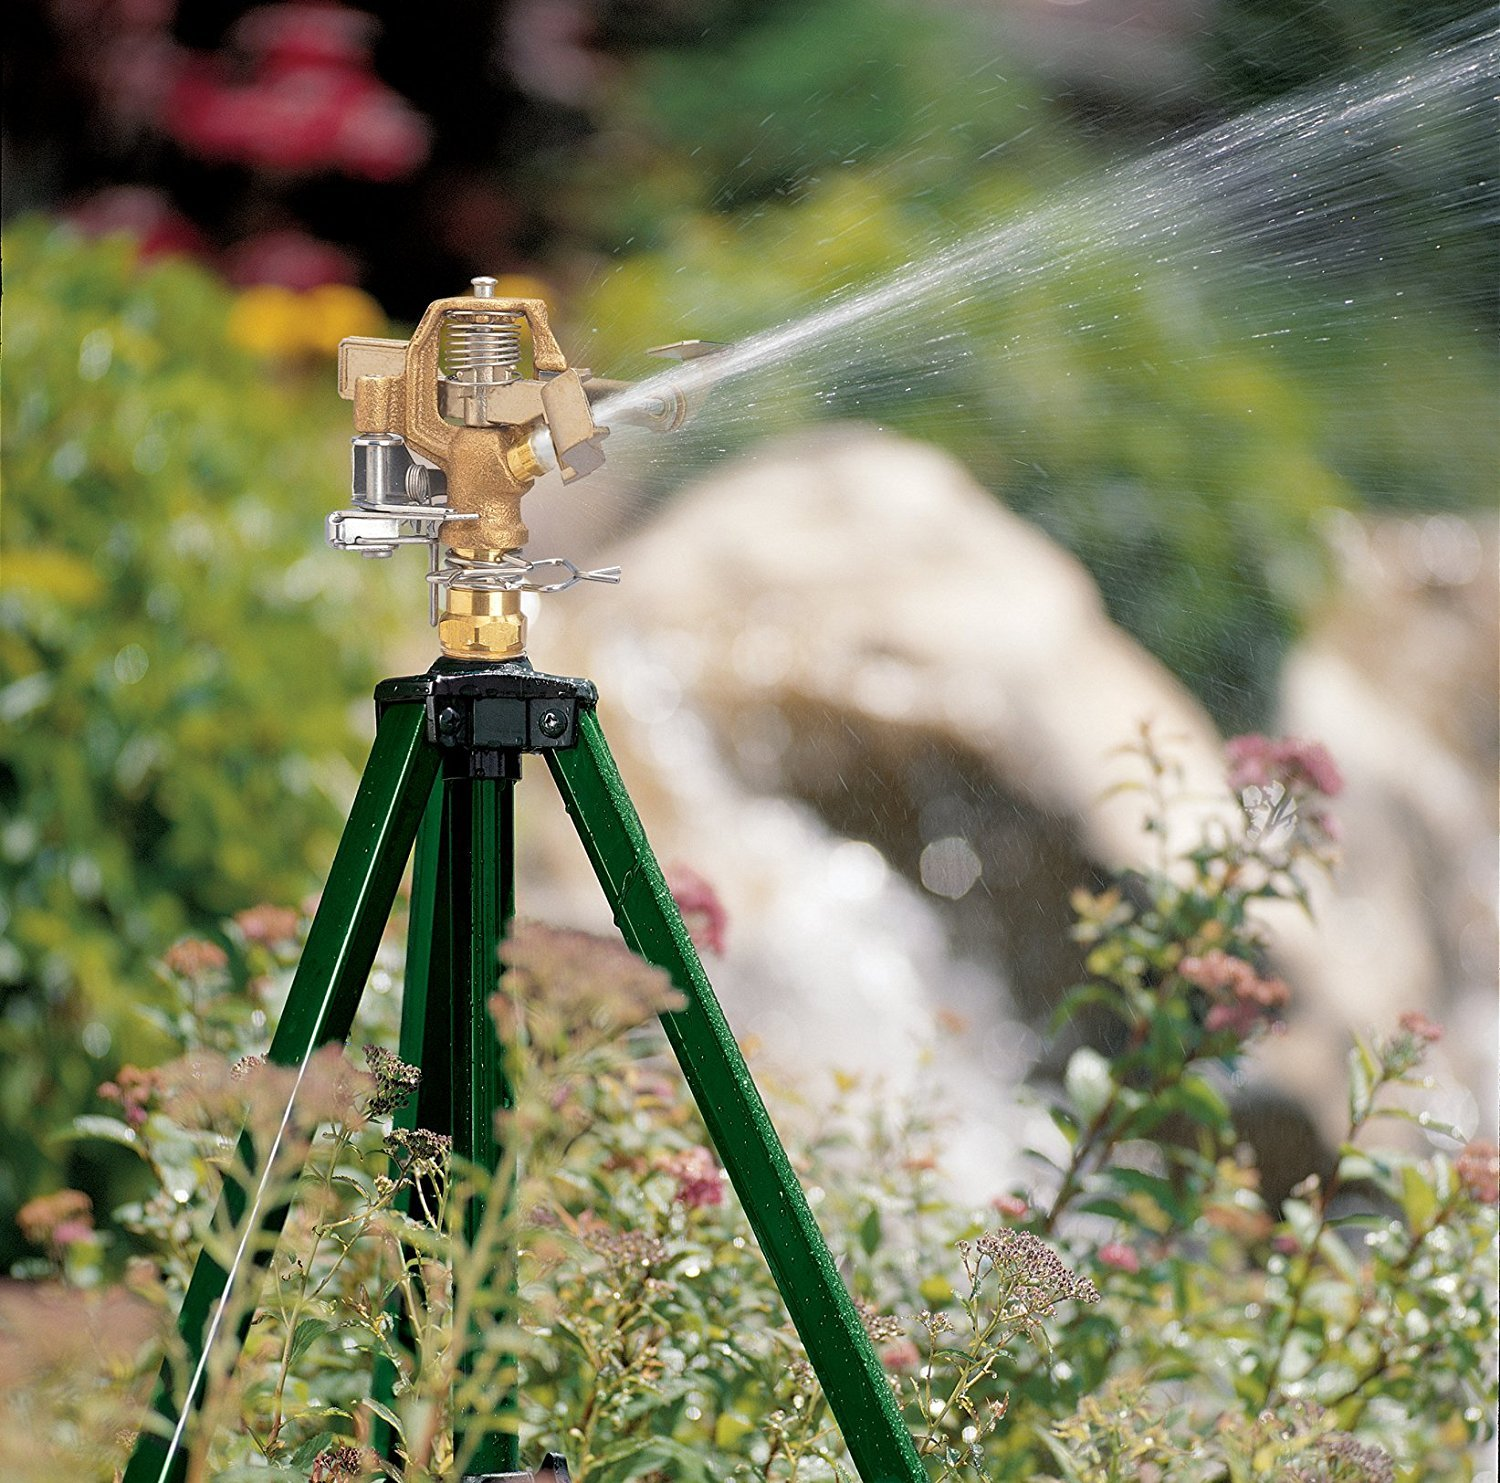 Orbit Heavy Duty Brass Lawn Impact Sprinkler on Tripod Base, Water Yard - 58308D